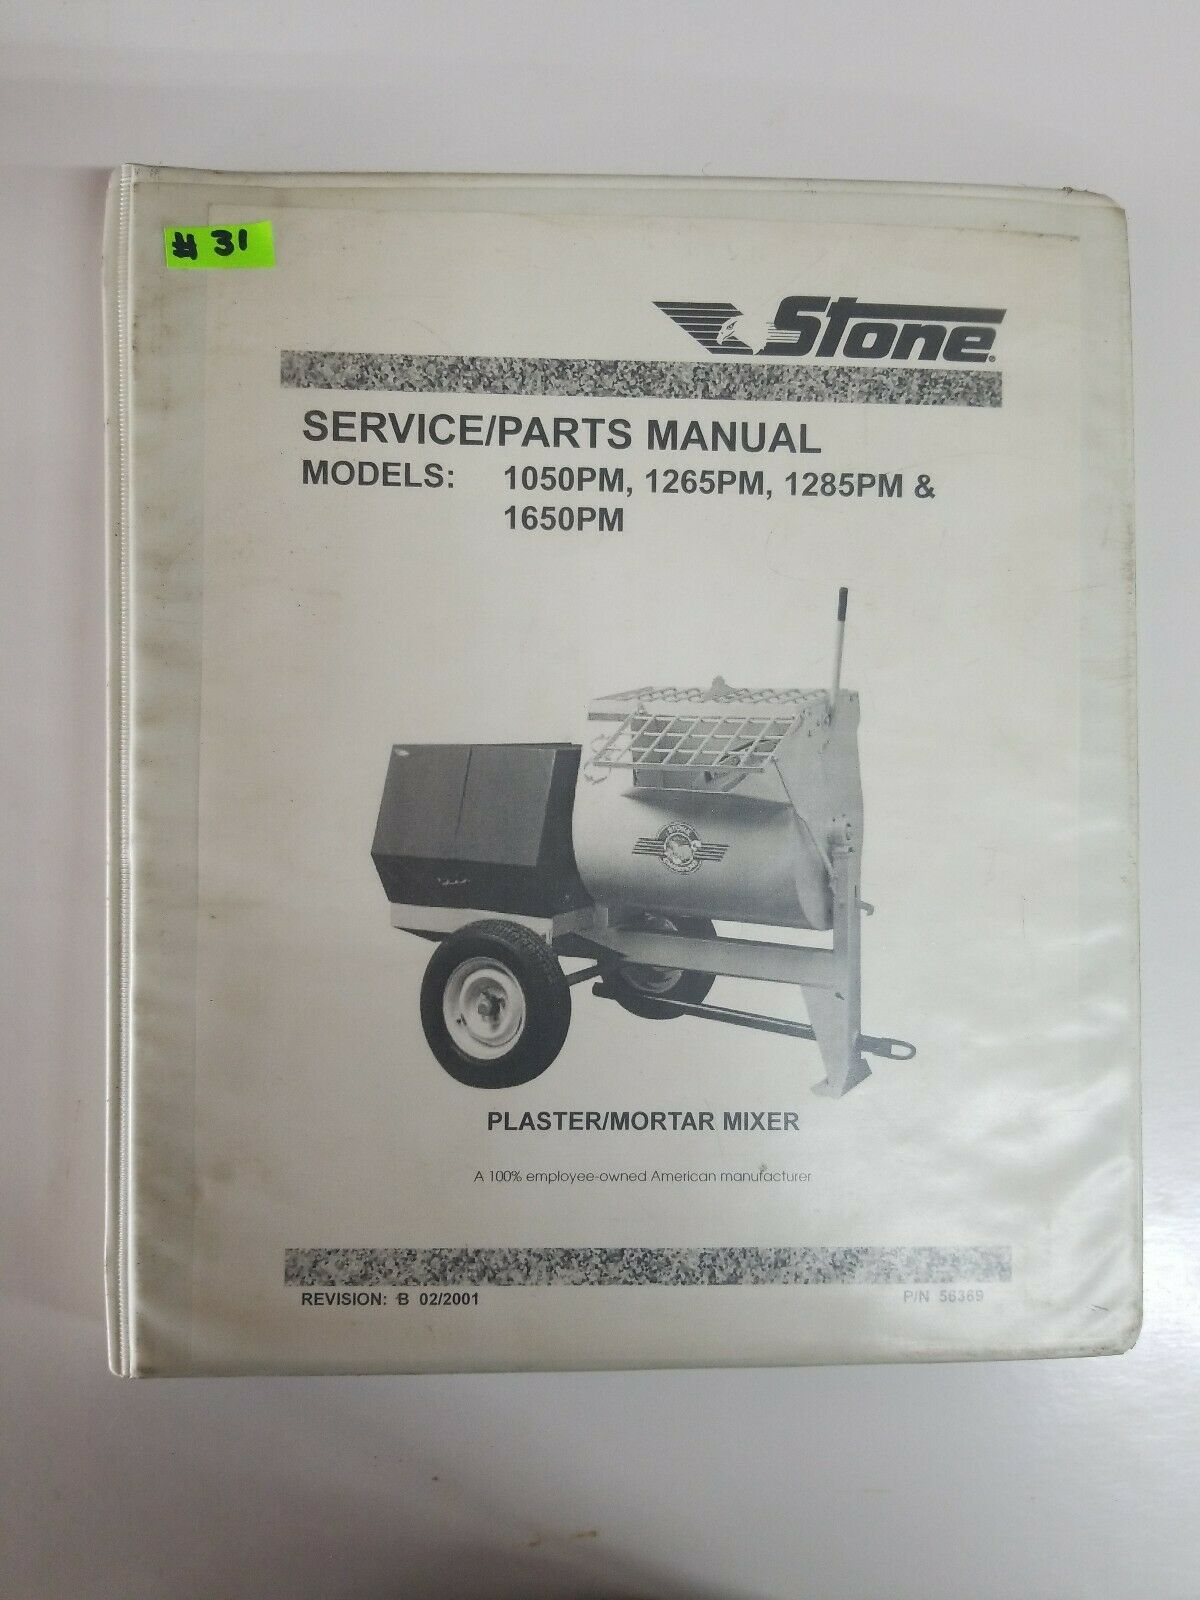 Stone Mixer Parts : stone, mixer, parts, Stone, 465PM, 655PM, 655PMP, 755PM, 855PM, Service/parts, Owners, Manual